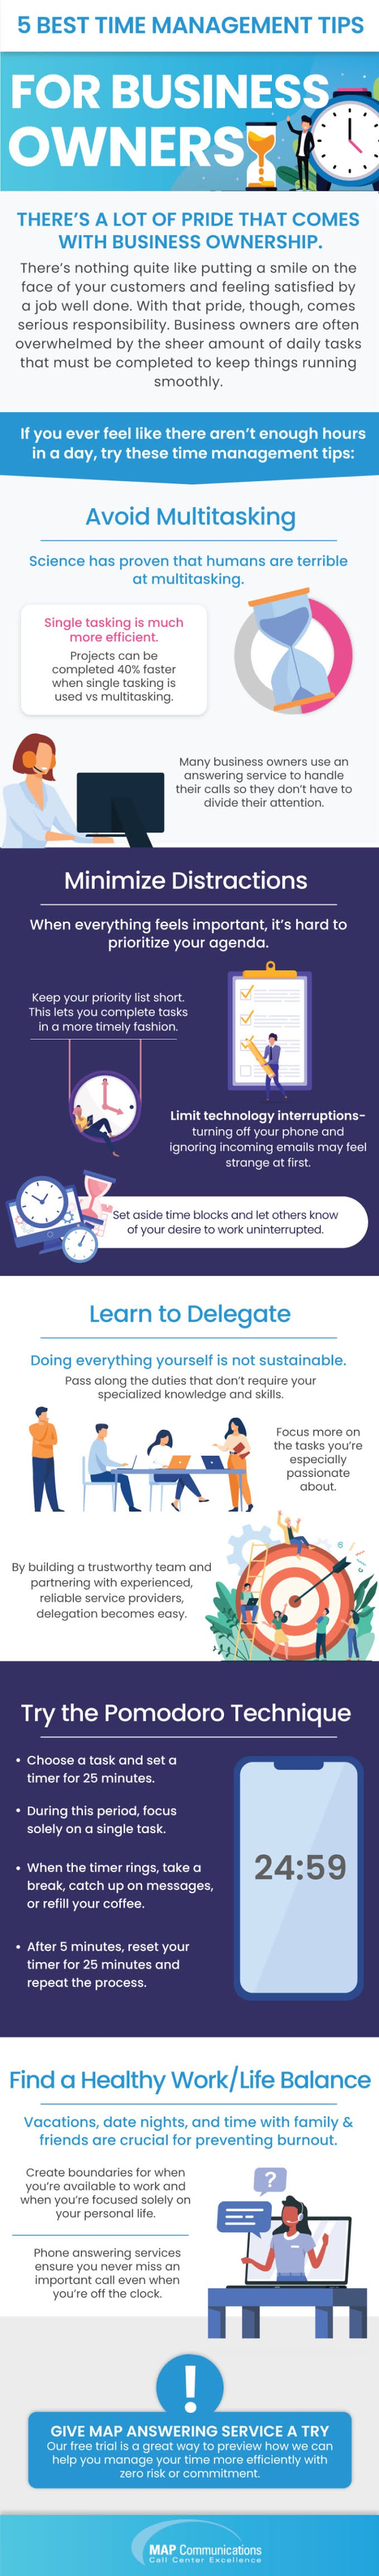 5 Best Time Management Tips for Business Owners #infographic #Business Owners #Management Tips #infographics #Business